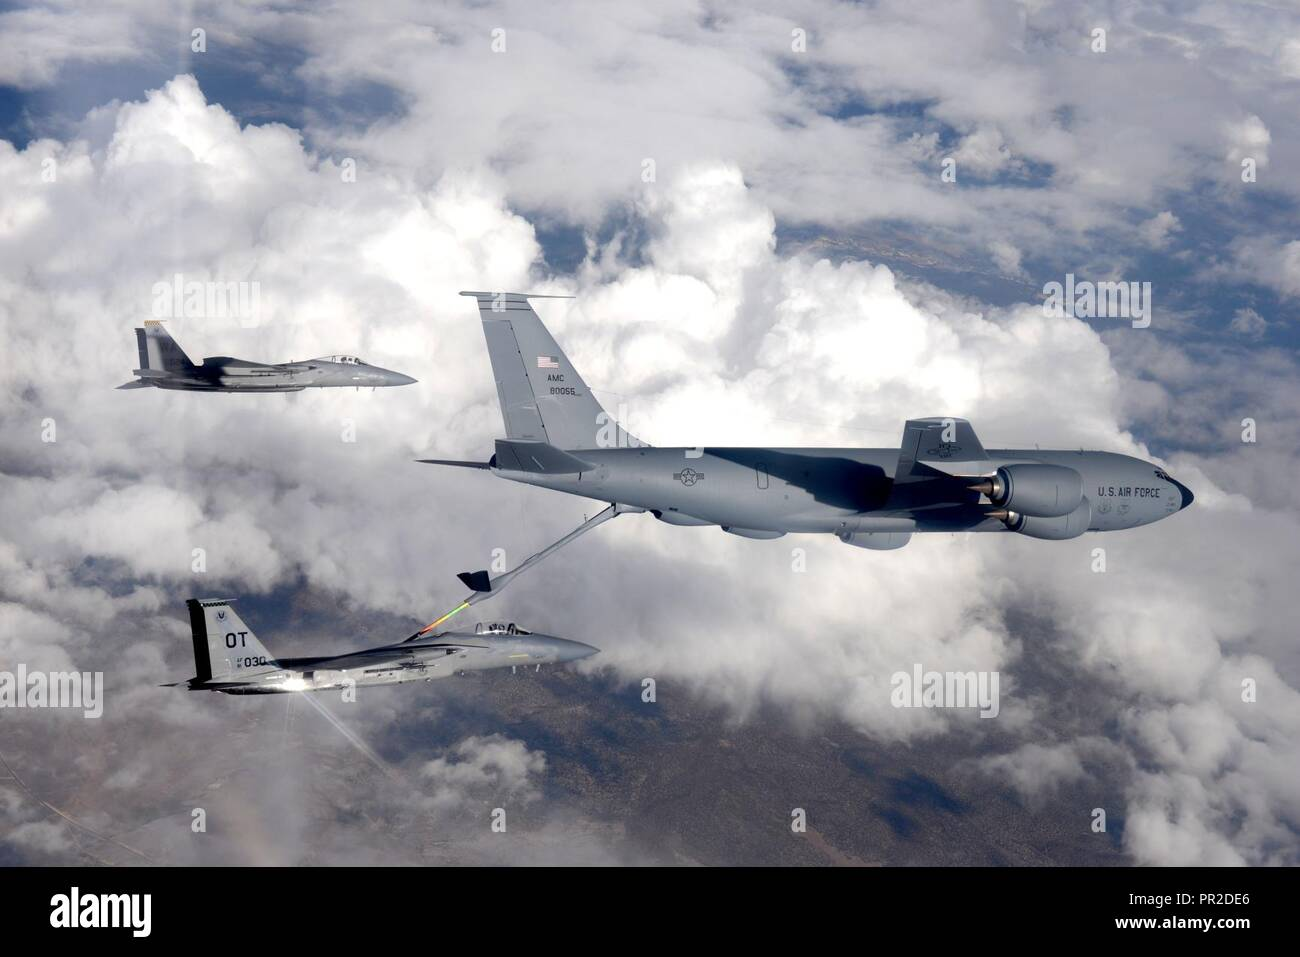 An F-15 fighter jet, assigned to the 433rd Weapons Squadron, at Nellis Air Force Base, Nevada, receives aerial refueling from a KC-135 Stratotanker cargo aircraft assigned to the 509th Weapons Squadron, at Fairchild Air Force Base, Washington, over the Nevada Test and Training Range July 10, 2017. The United States Air Force Weapons School teaches graduate-level instructor courses that provide the world's most advanced training in weapons and tactics employment to officers of the combat air forces and mobility air forces. - Stock Image